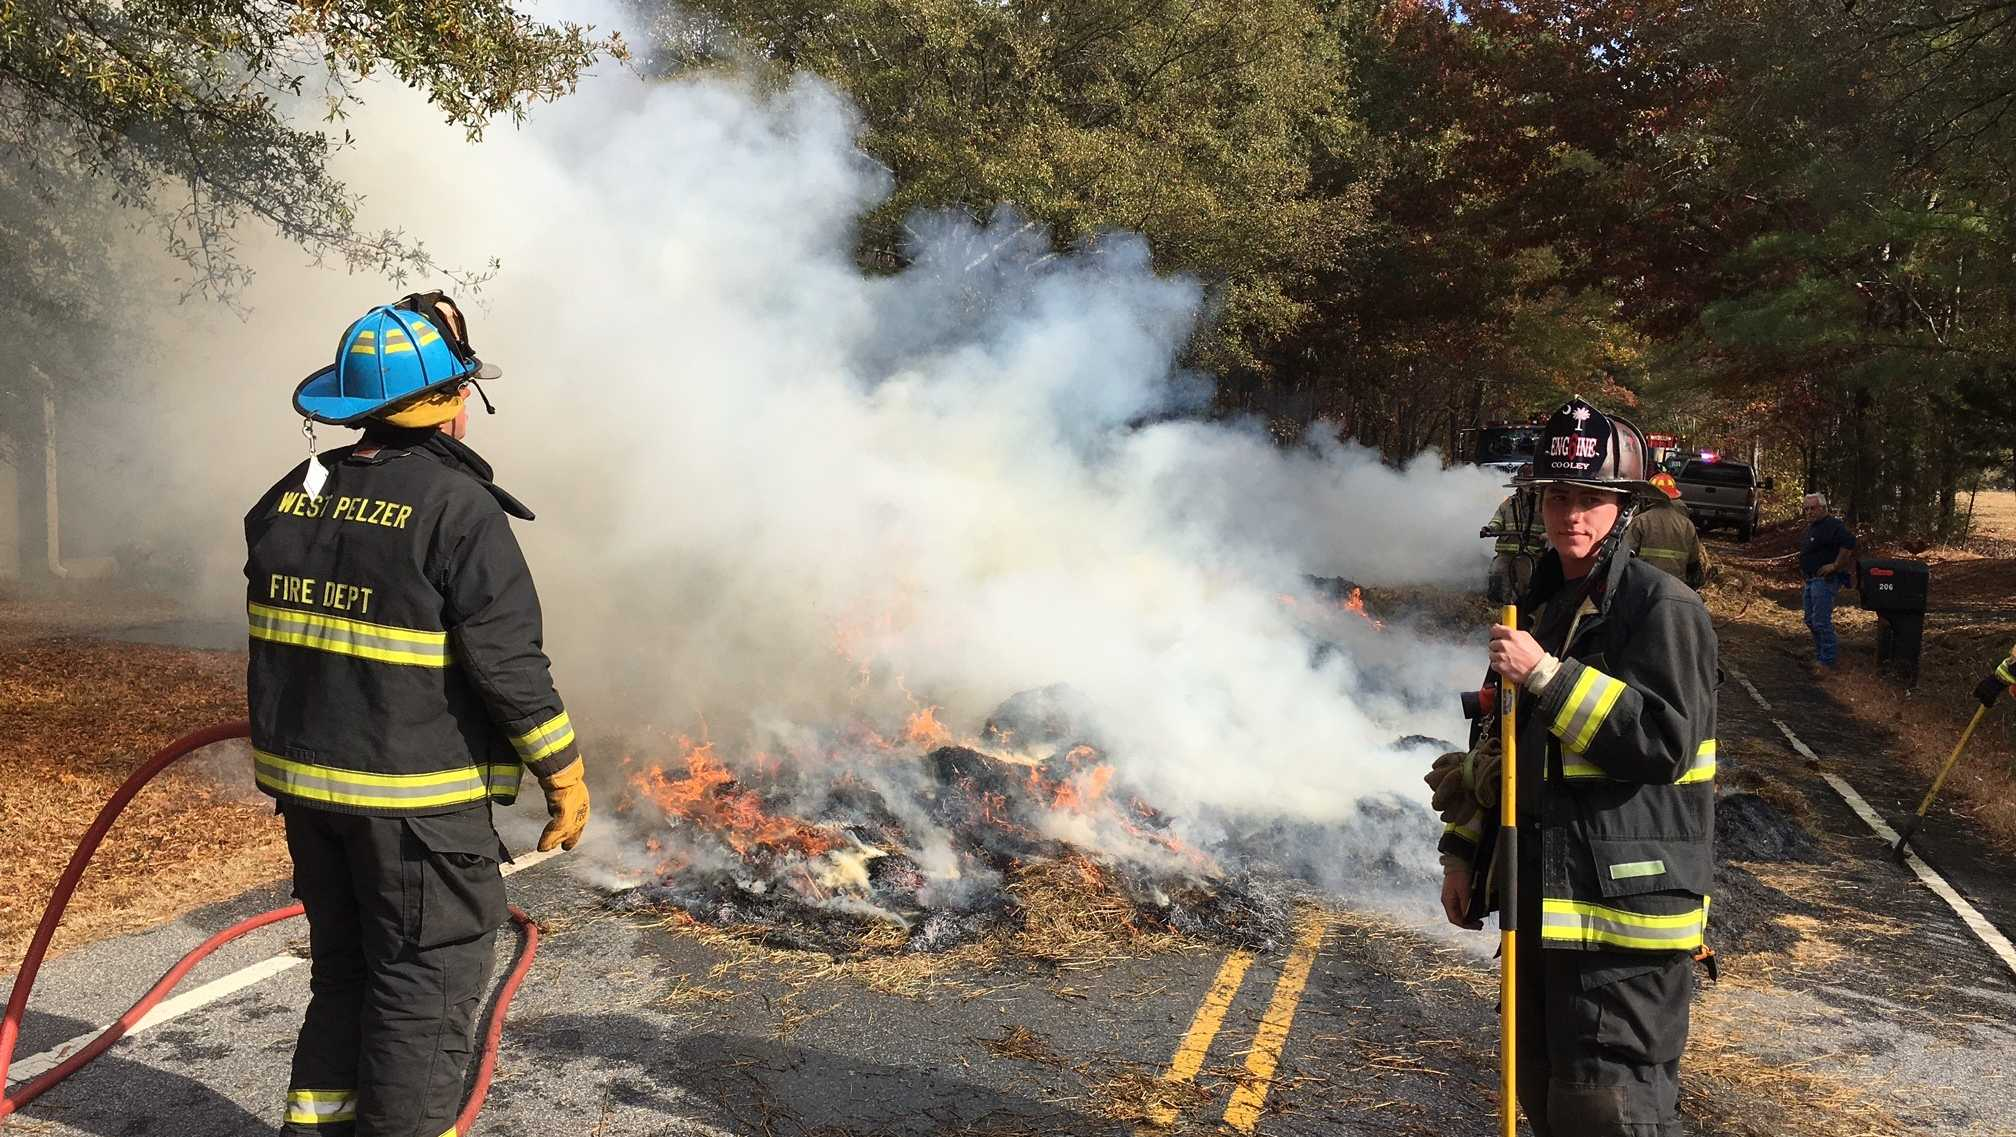 Welcome Road is shut down after hay bales catch fire